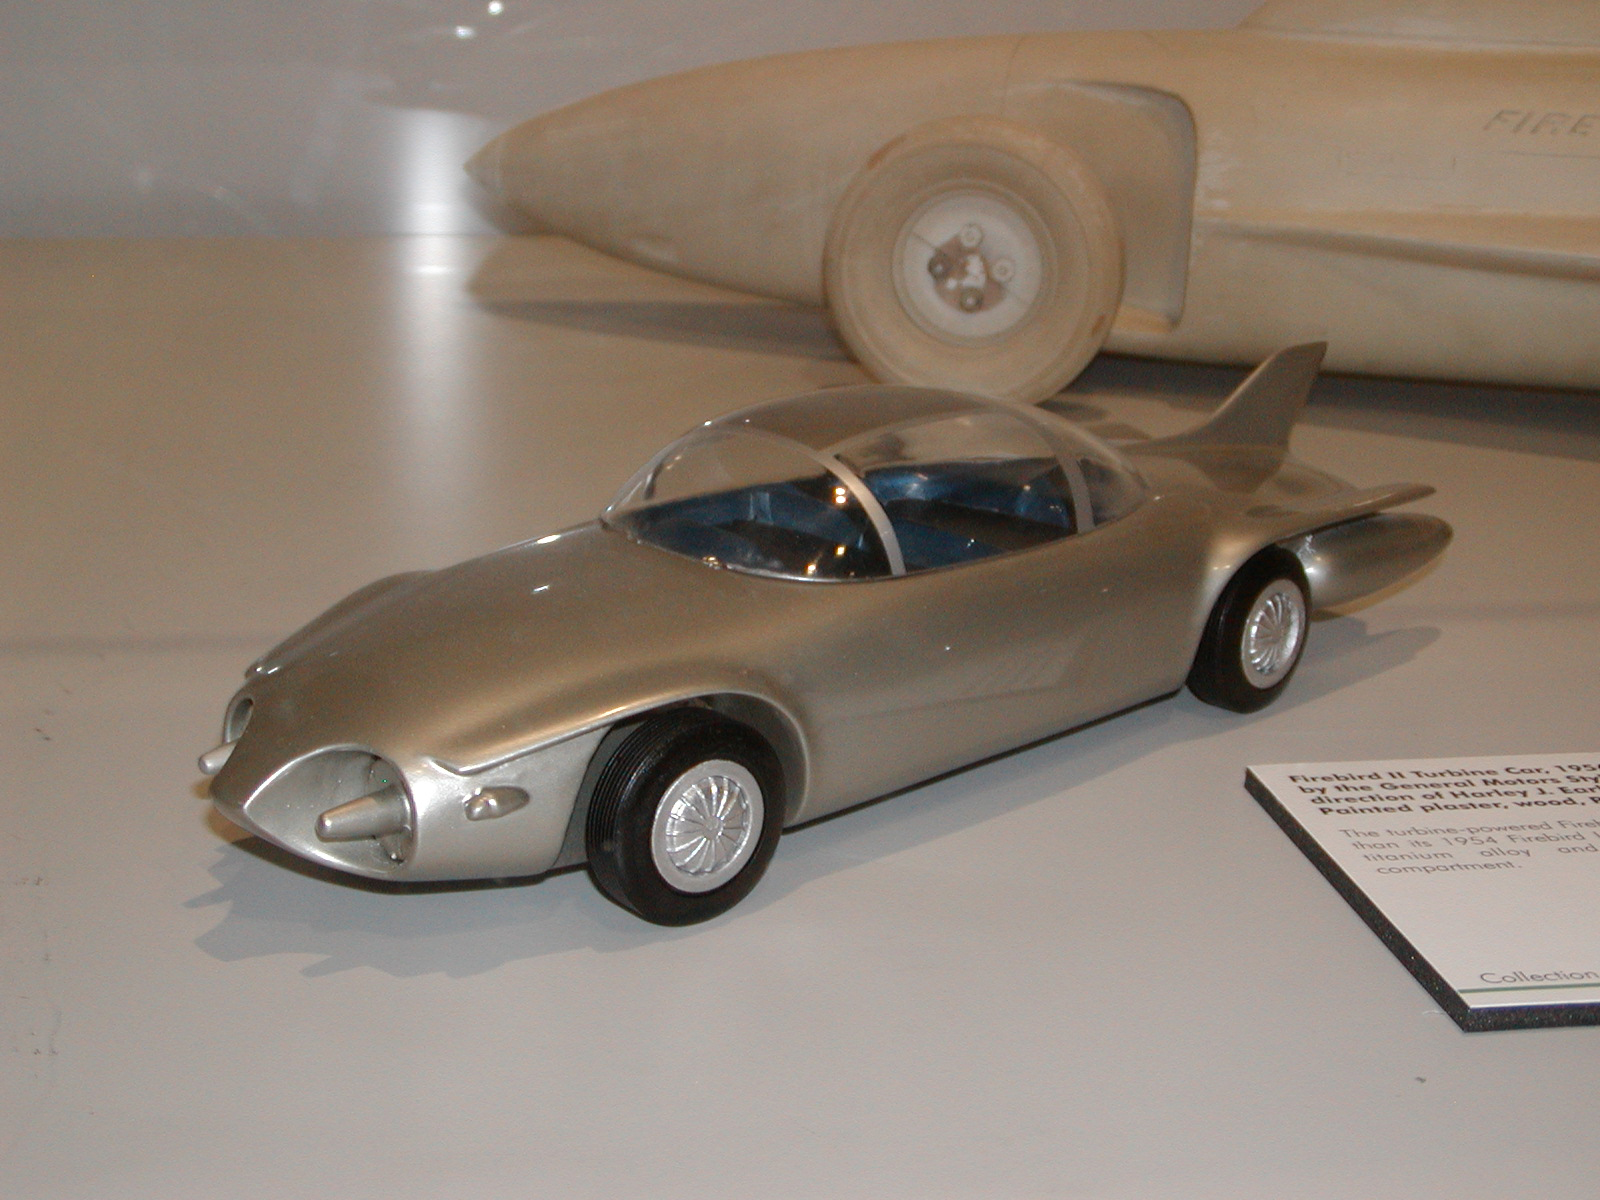 A model of the Firebird II.